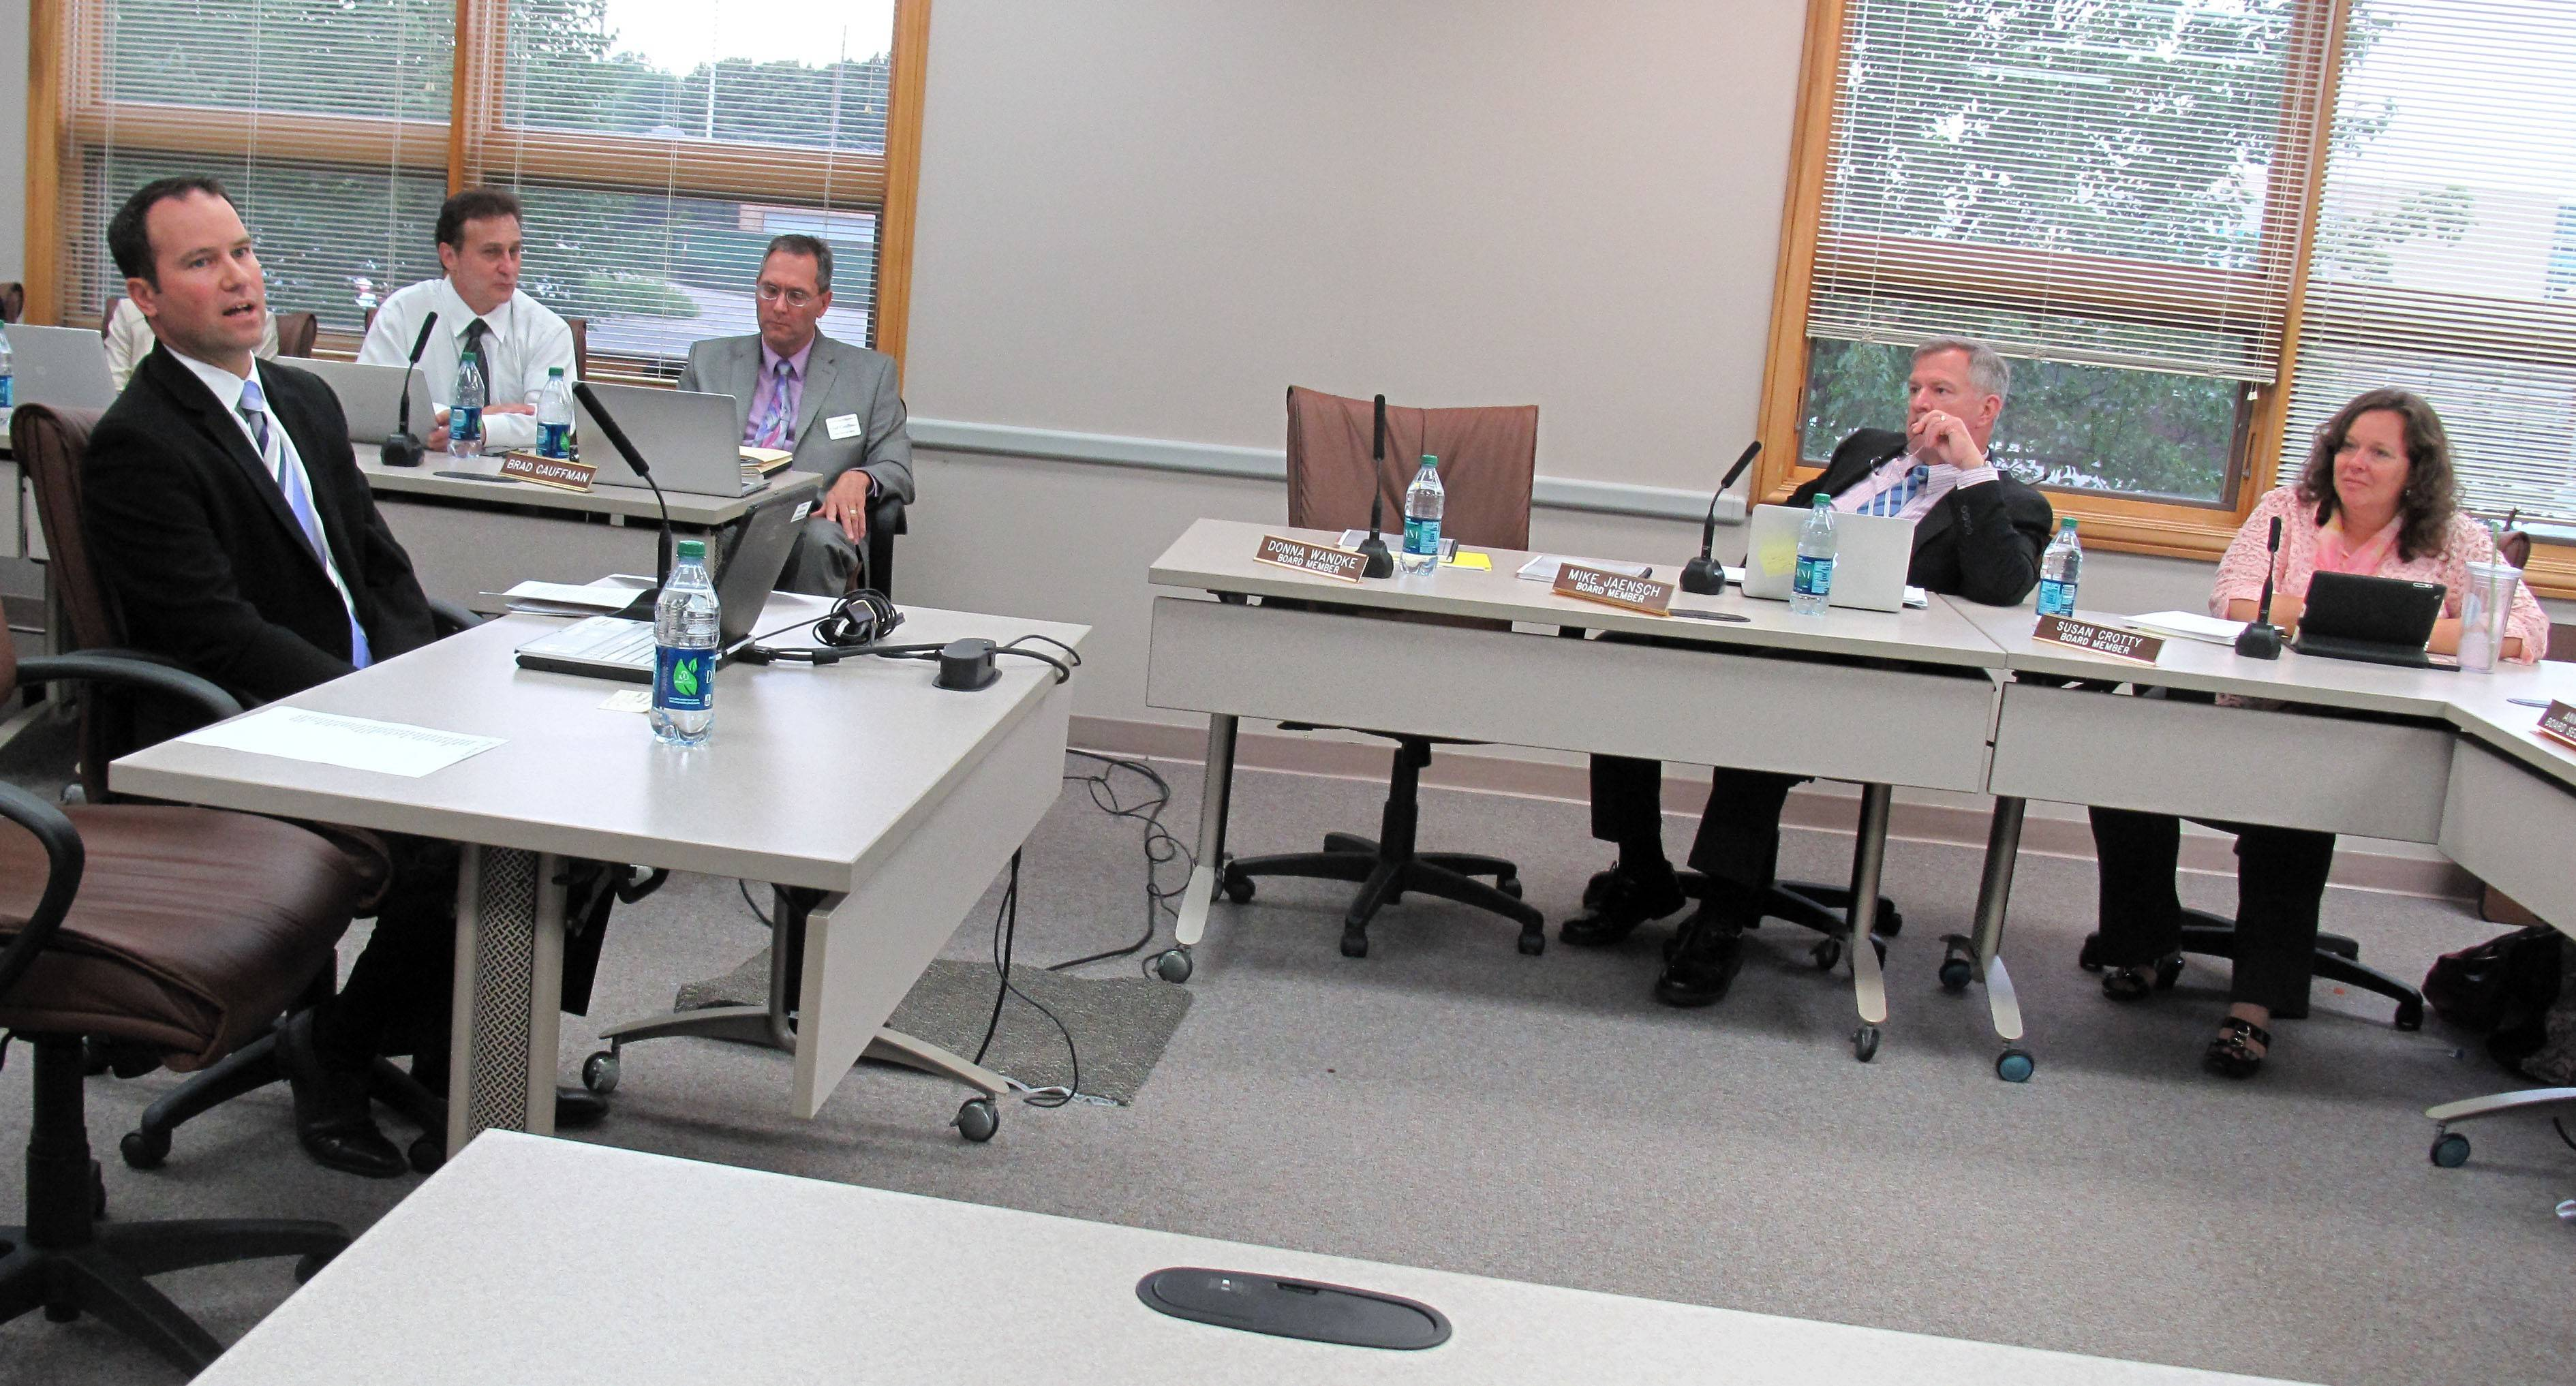 Ken Banas of Lisle shares concerns Monday night with Naperville Unit District 203 board members including Mike Jaench and Susan Crotty, right, about the possible lease of cell towers at Kennedy and Lincoln junior high schools.